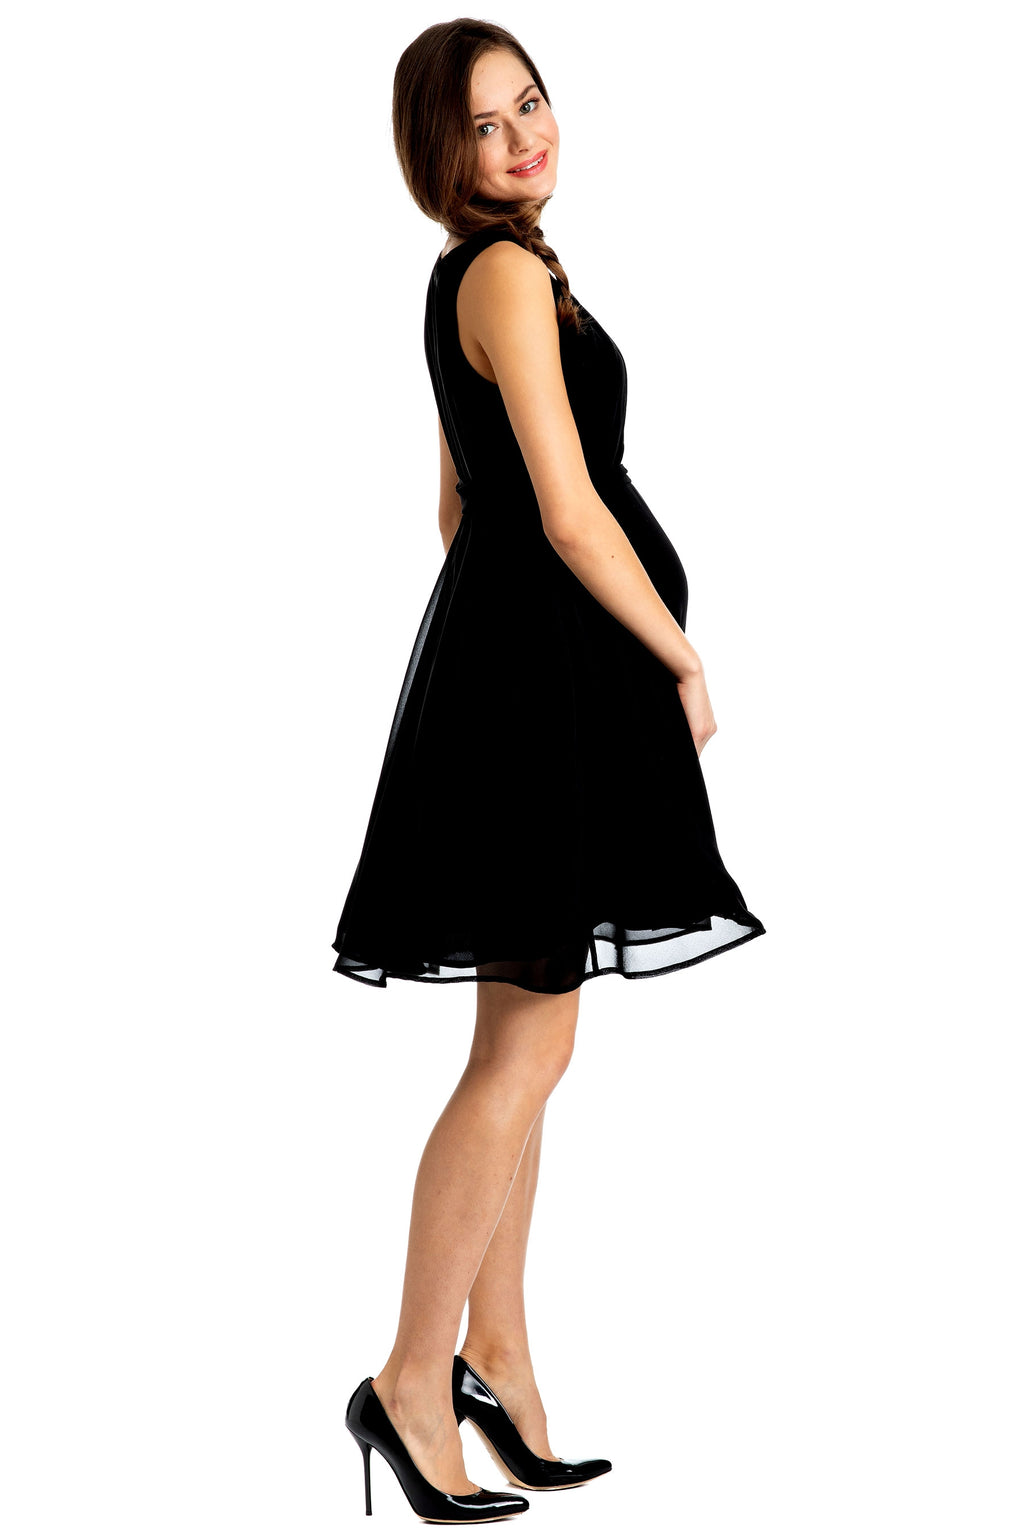 Isabella Chiffon Maternity Dress by Pietro Brunelli In Caviar Blk - Seven Women Maternity